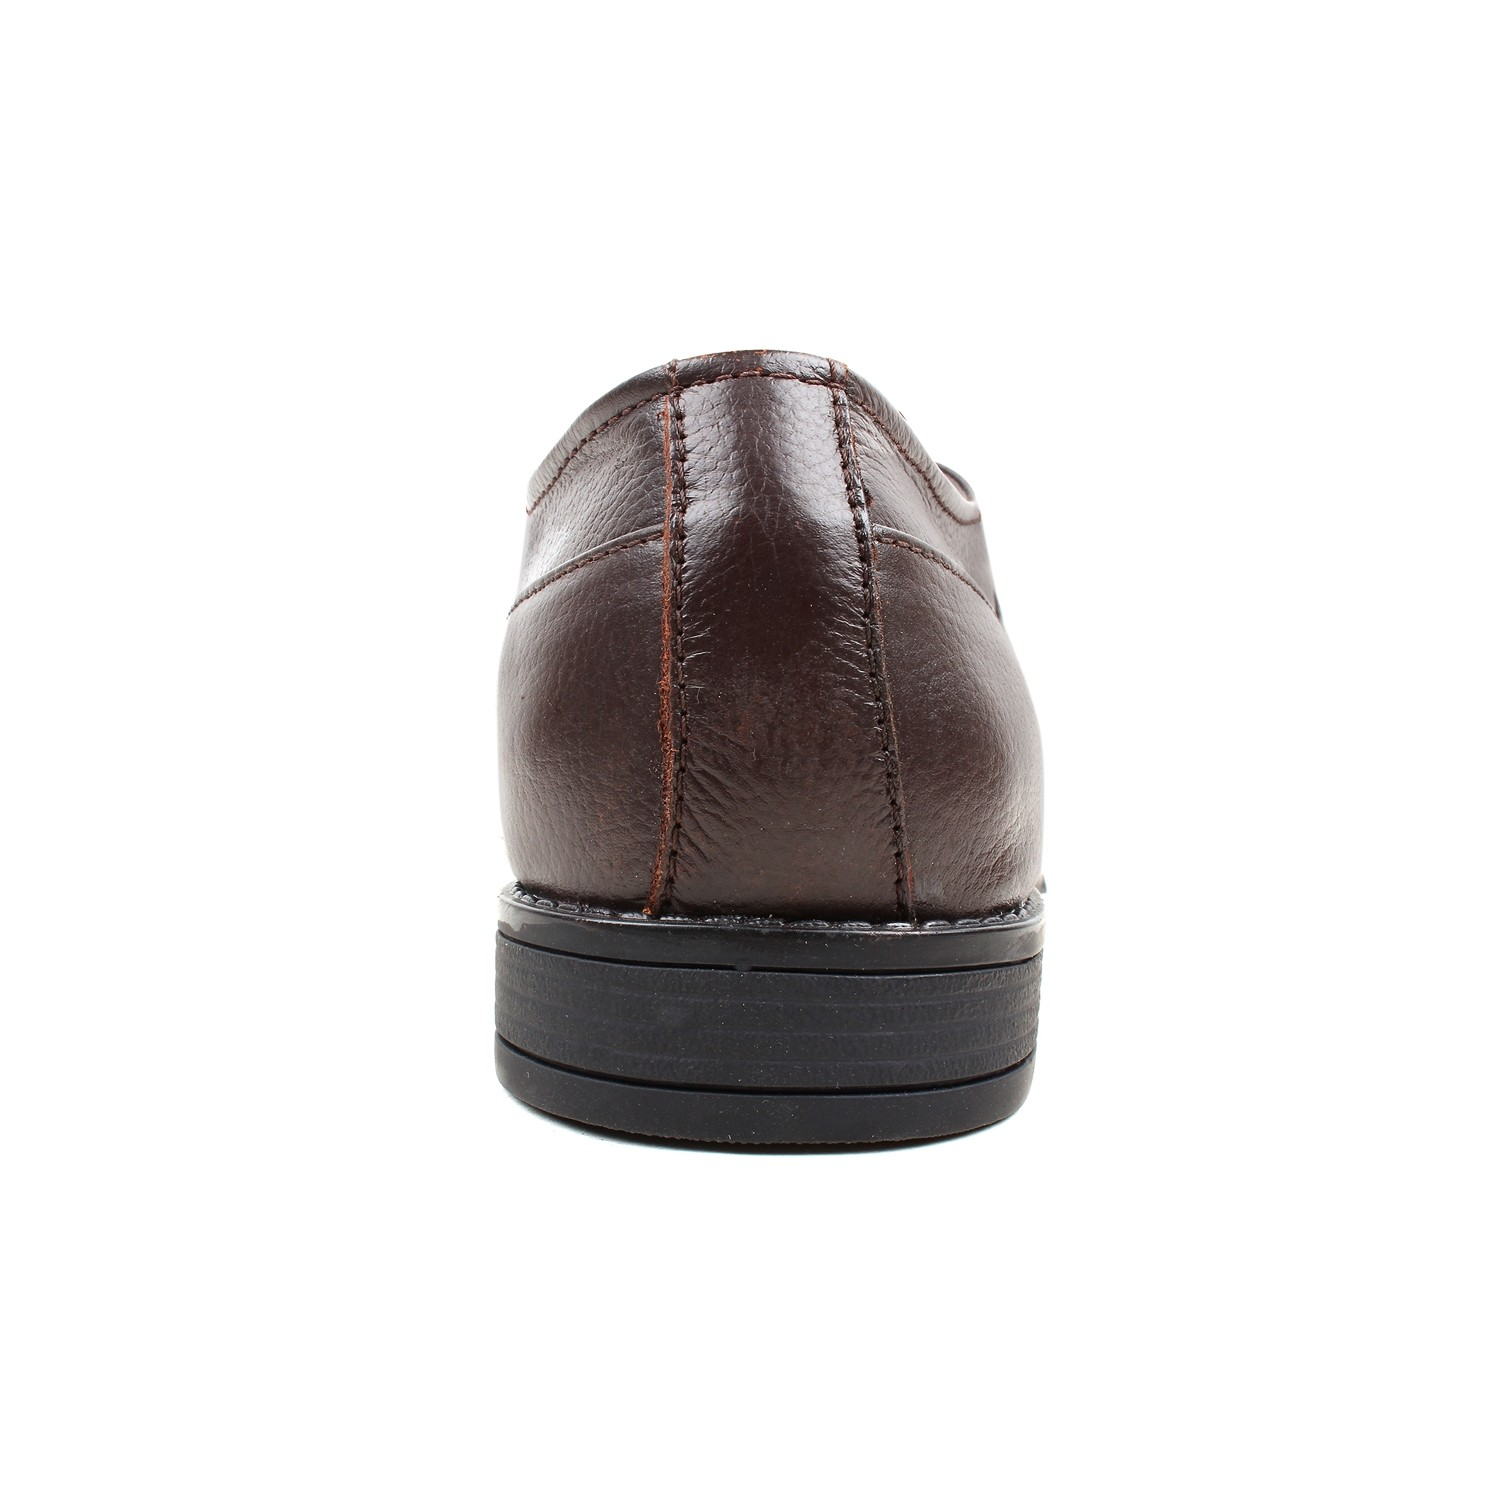 Leather-Shoes-Brown